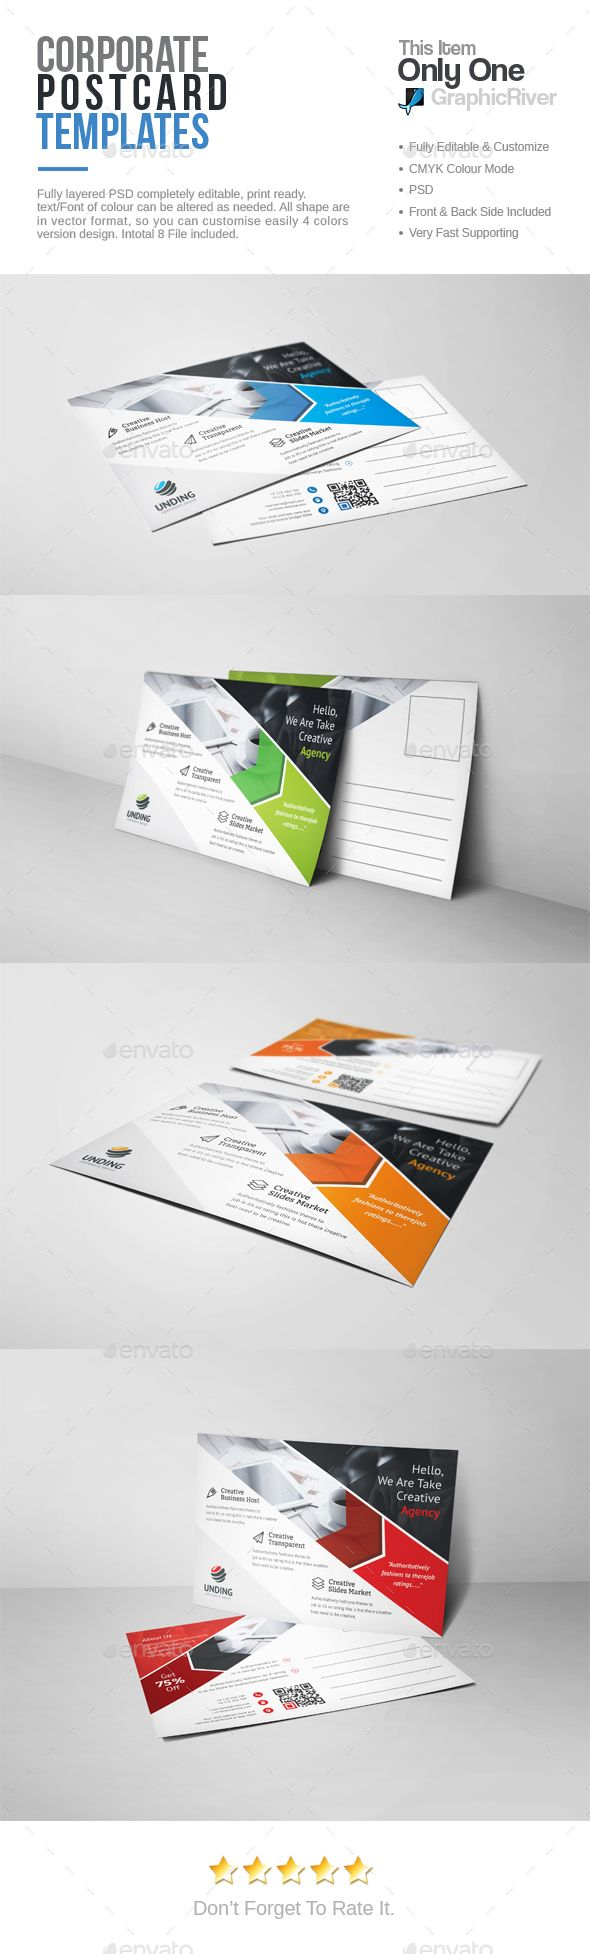 Photoshop postcard template forteforic photoshop postcard template maxwellsz